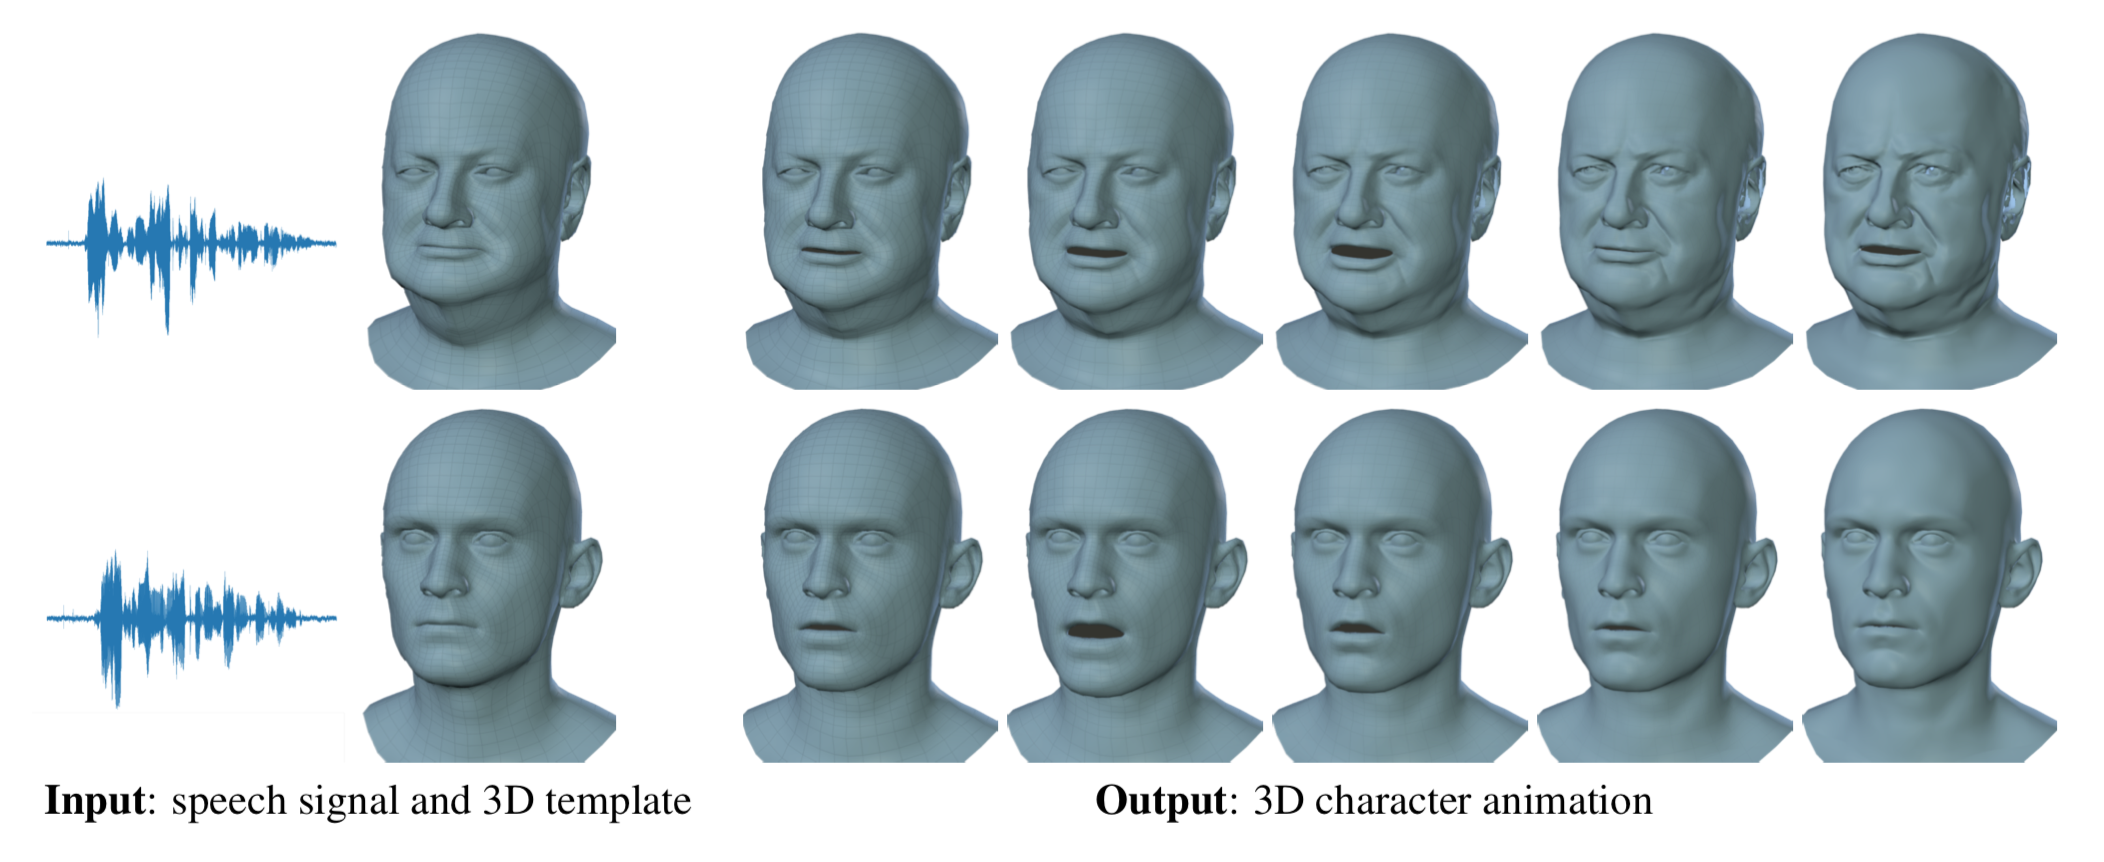 Build Realistic Human Speech Animations with the New VOCA Model and